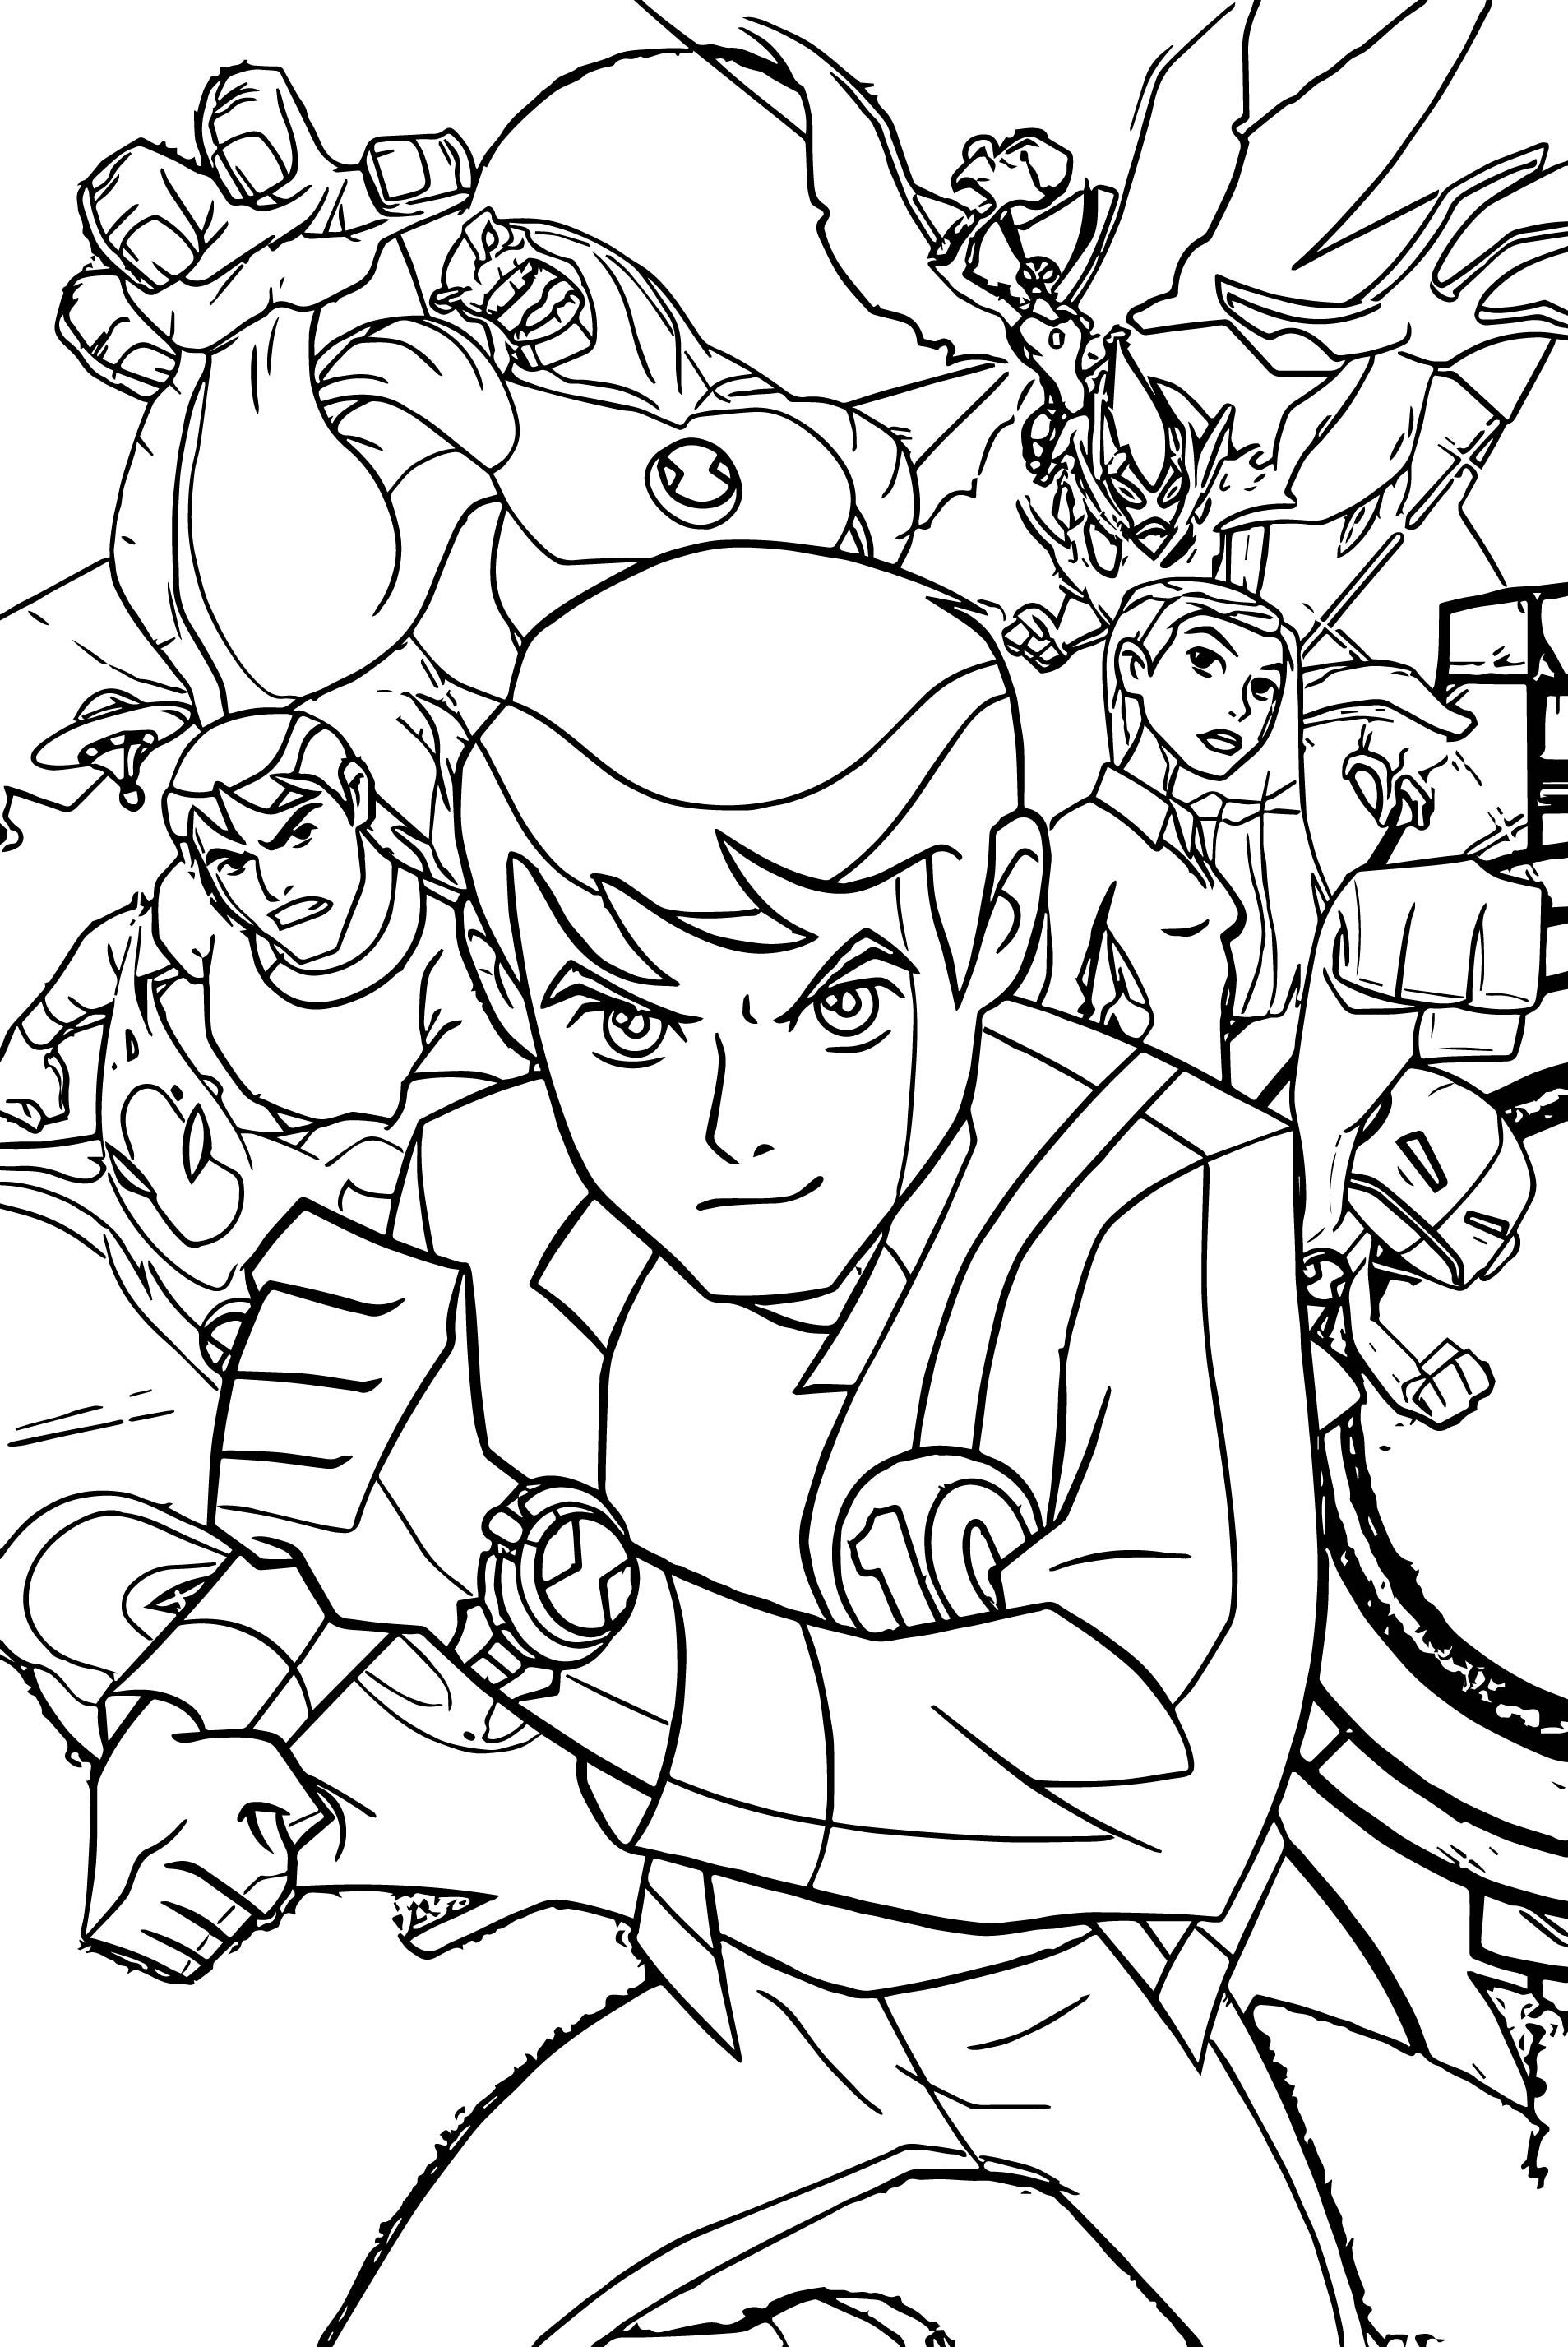 Awesome Benten Ben10 Alien Force Group Poster Coloring Page Coloring Pages Tangled Coloring Pages Cartoon Coloring Pages